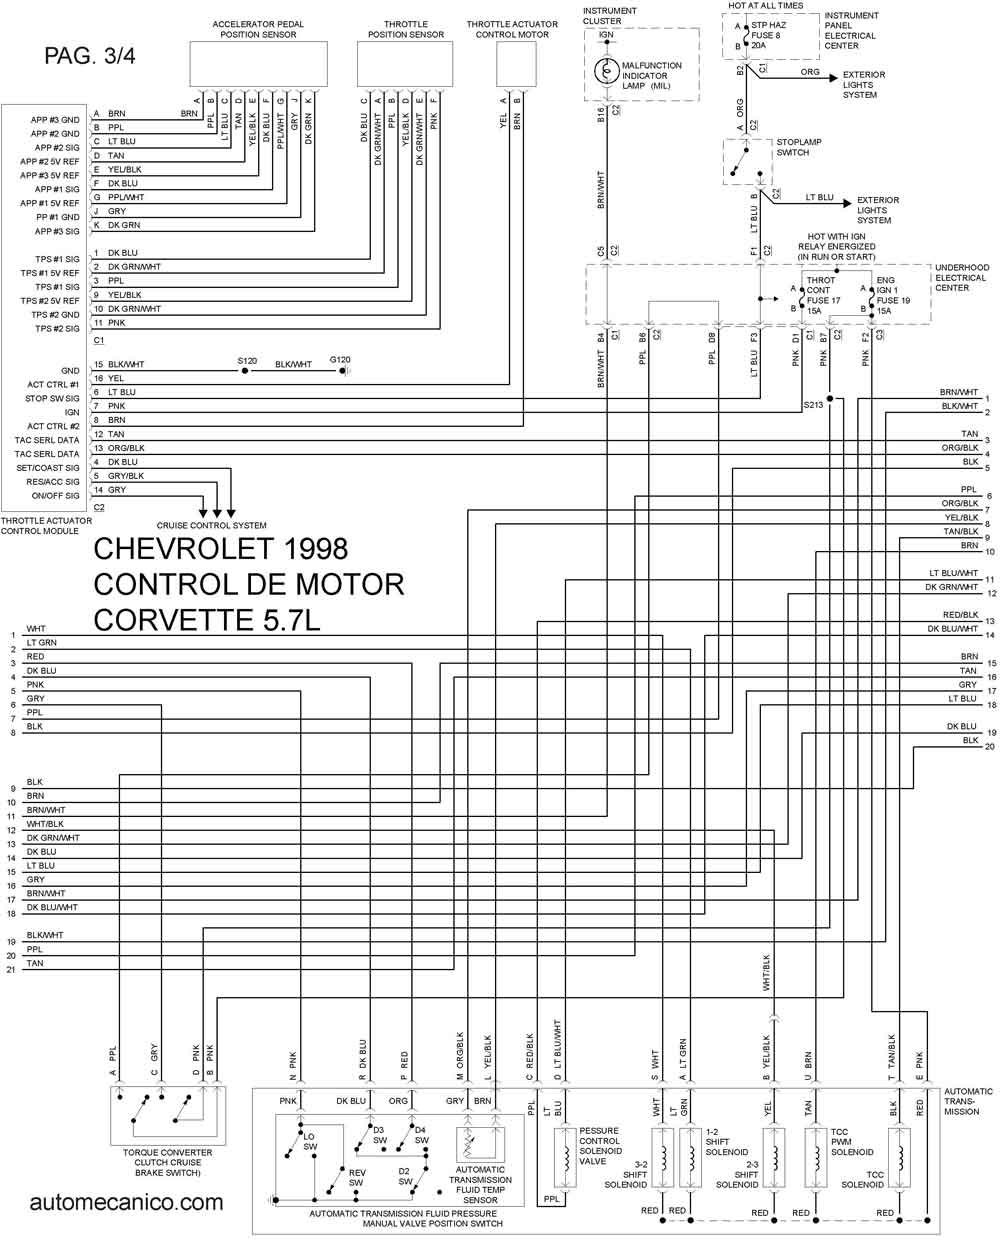 2005 Bmw X5 Engine Diagram Great Design Of Wiring 528i Chevrolet Malibu 2000 Nissan